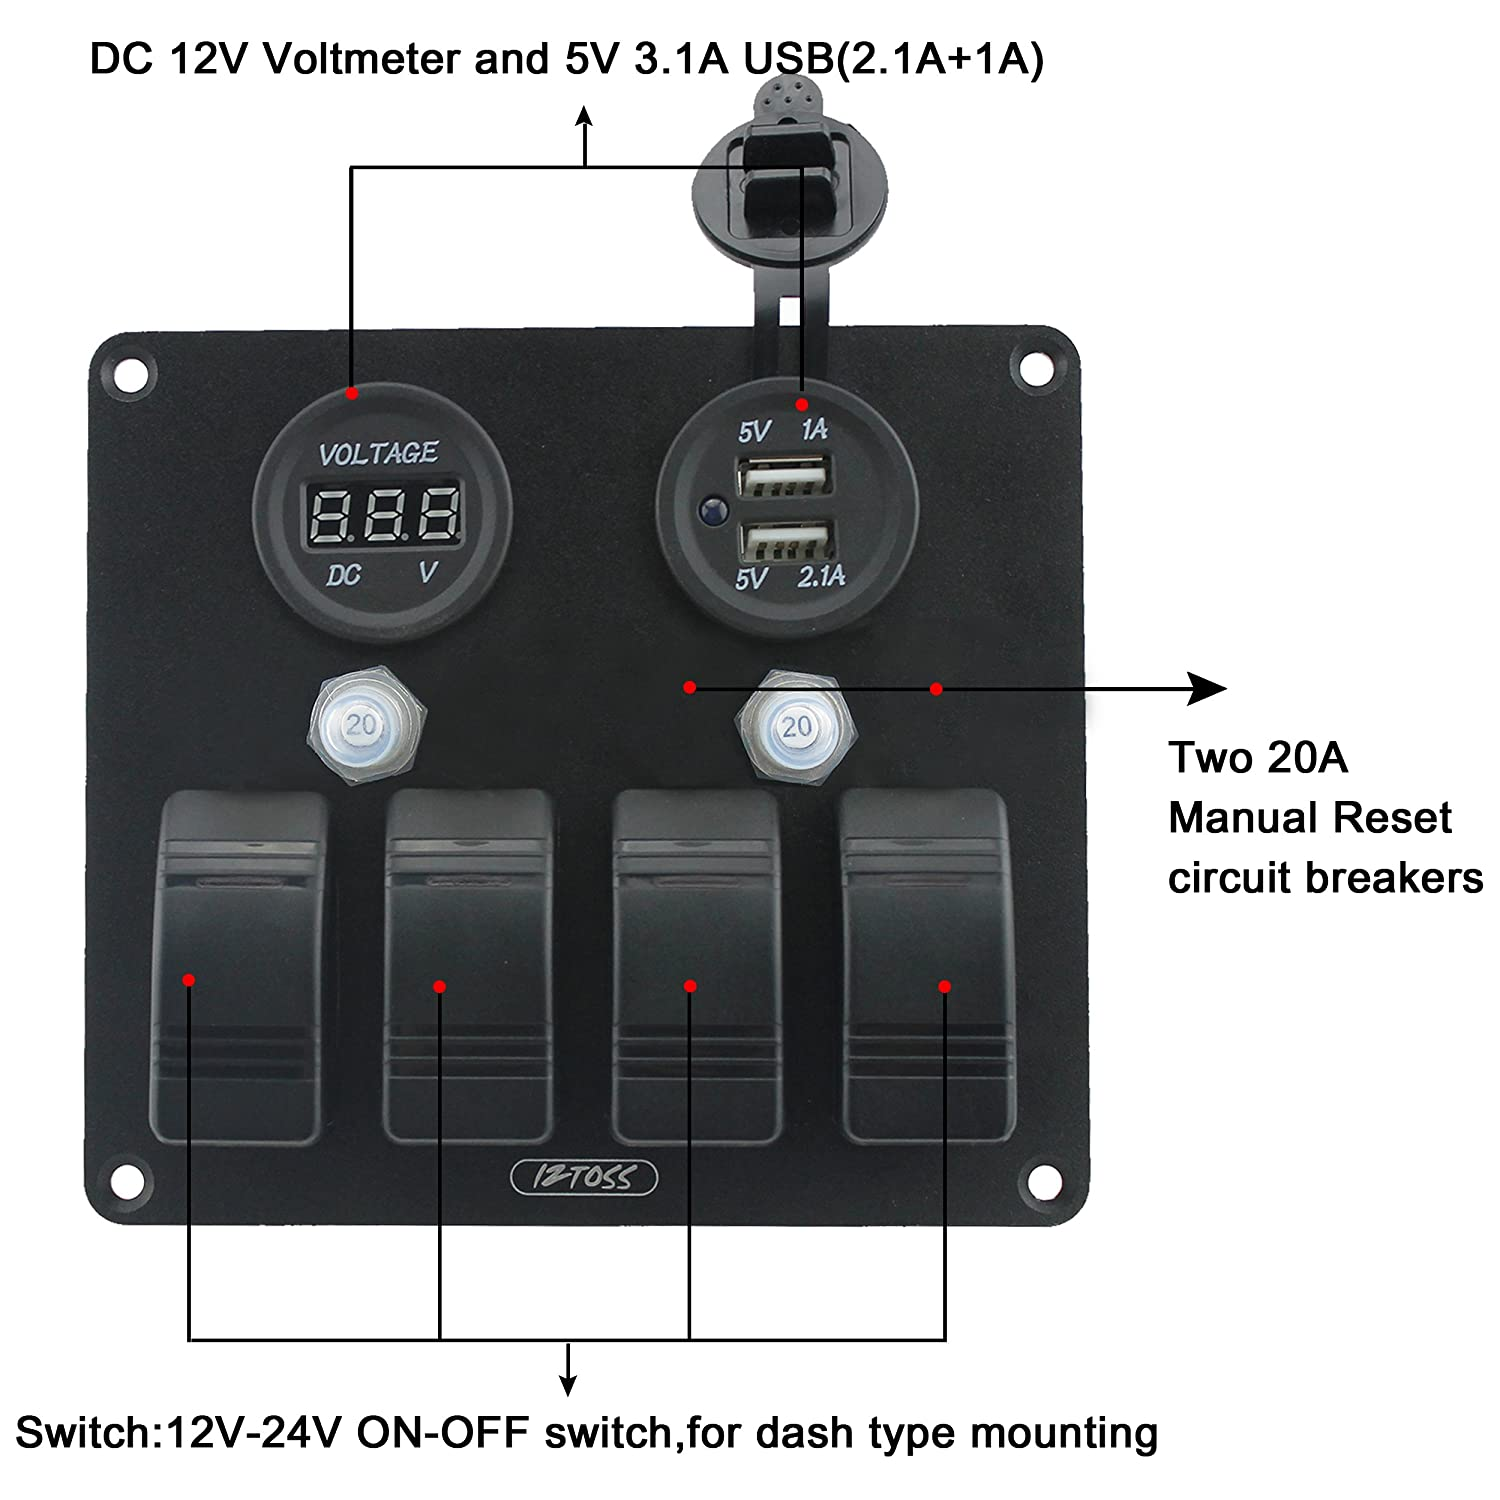 Iztoss 4 Gang Aluminium 3pin Rocker Toggle Switch Panel For A Way Wiring Diagram Dc With Waterproof Circuit Breaker 12v Voltmeter 31a Usb And Installation Kits Marine